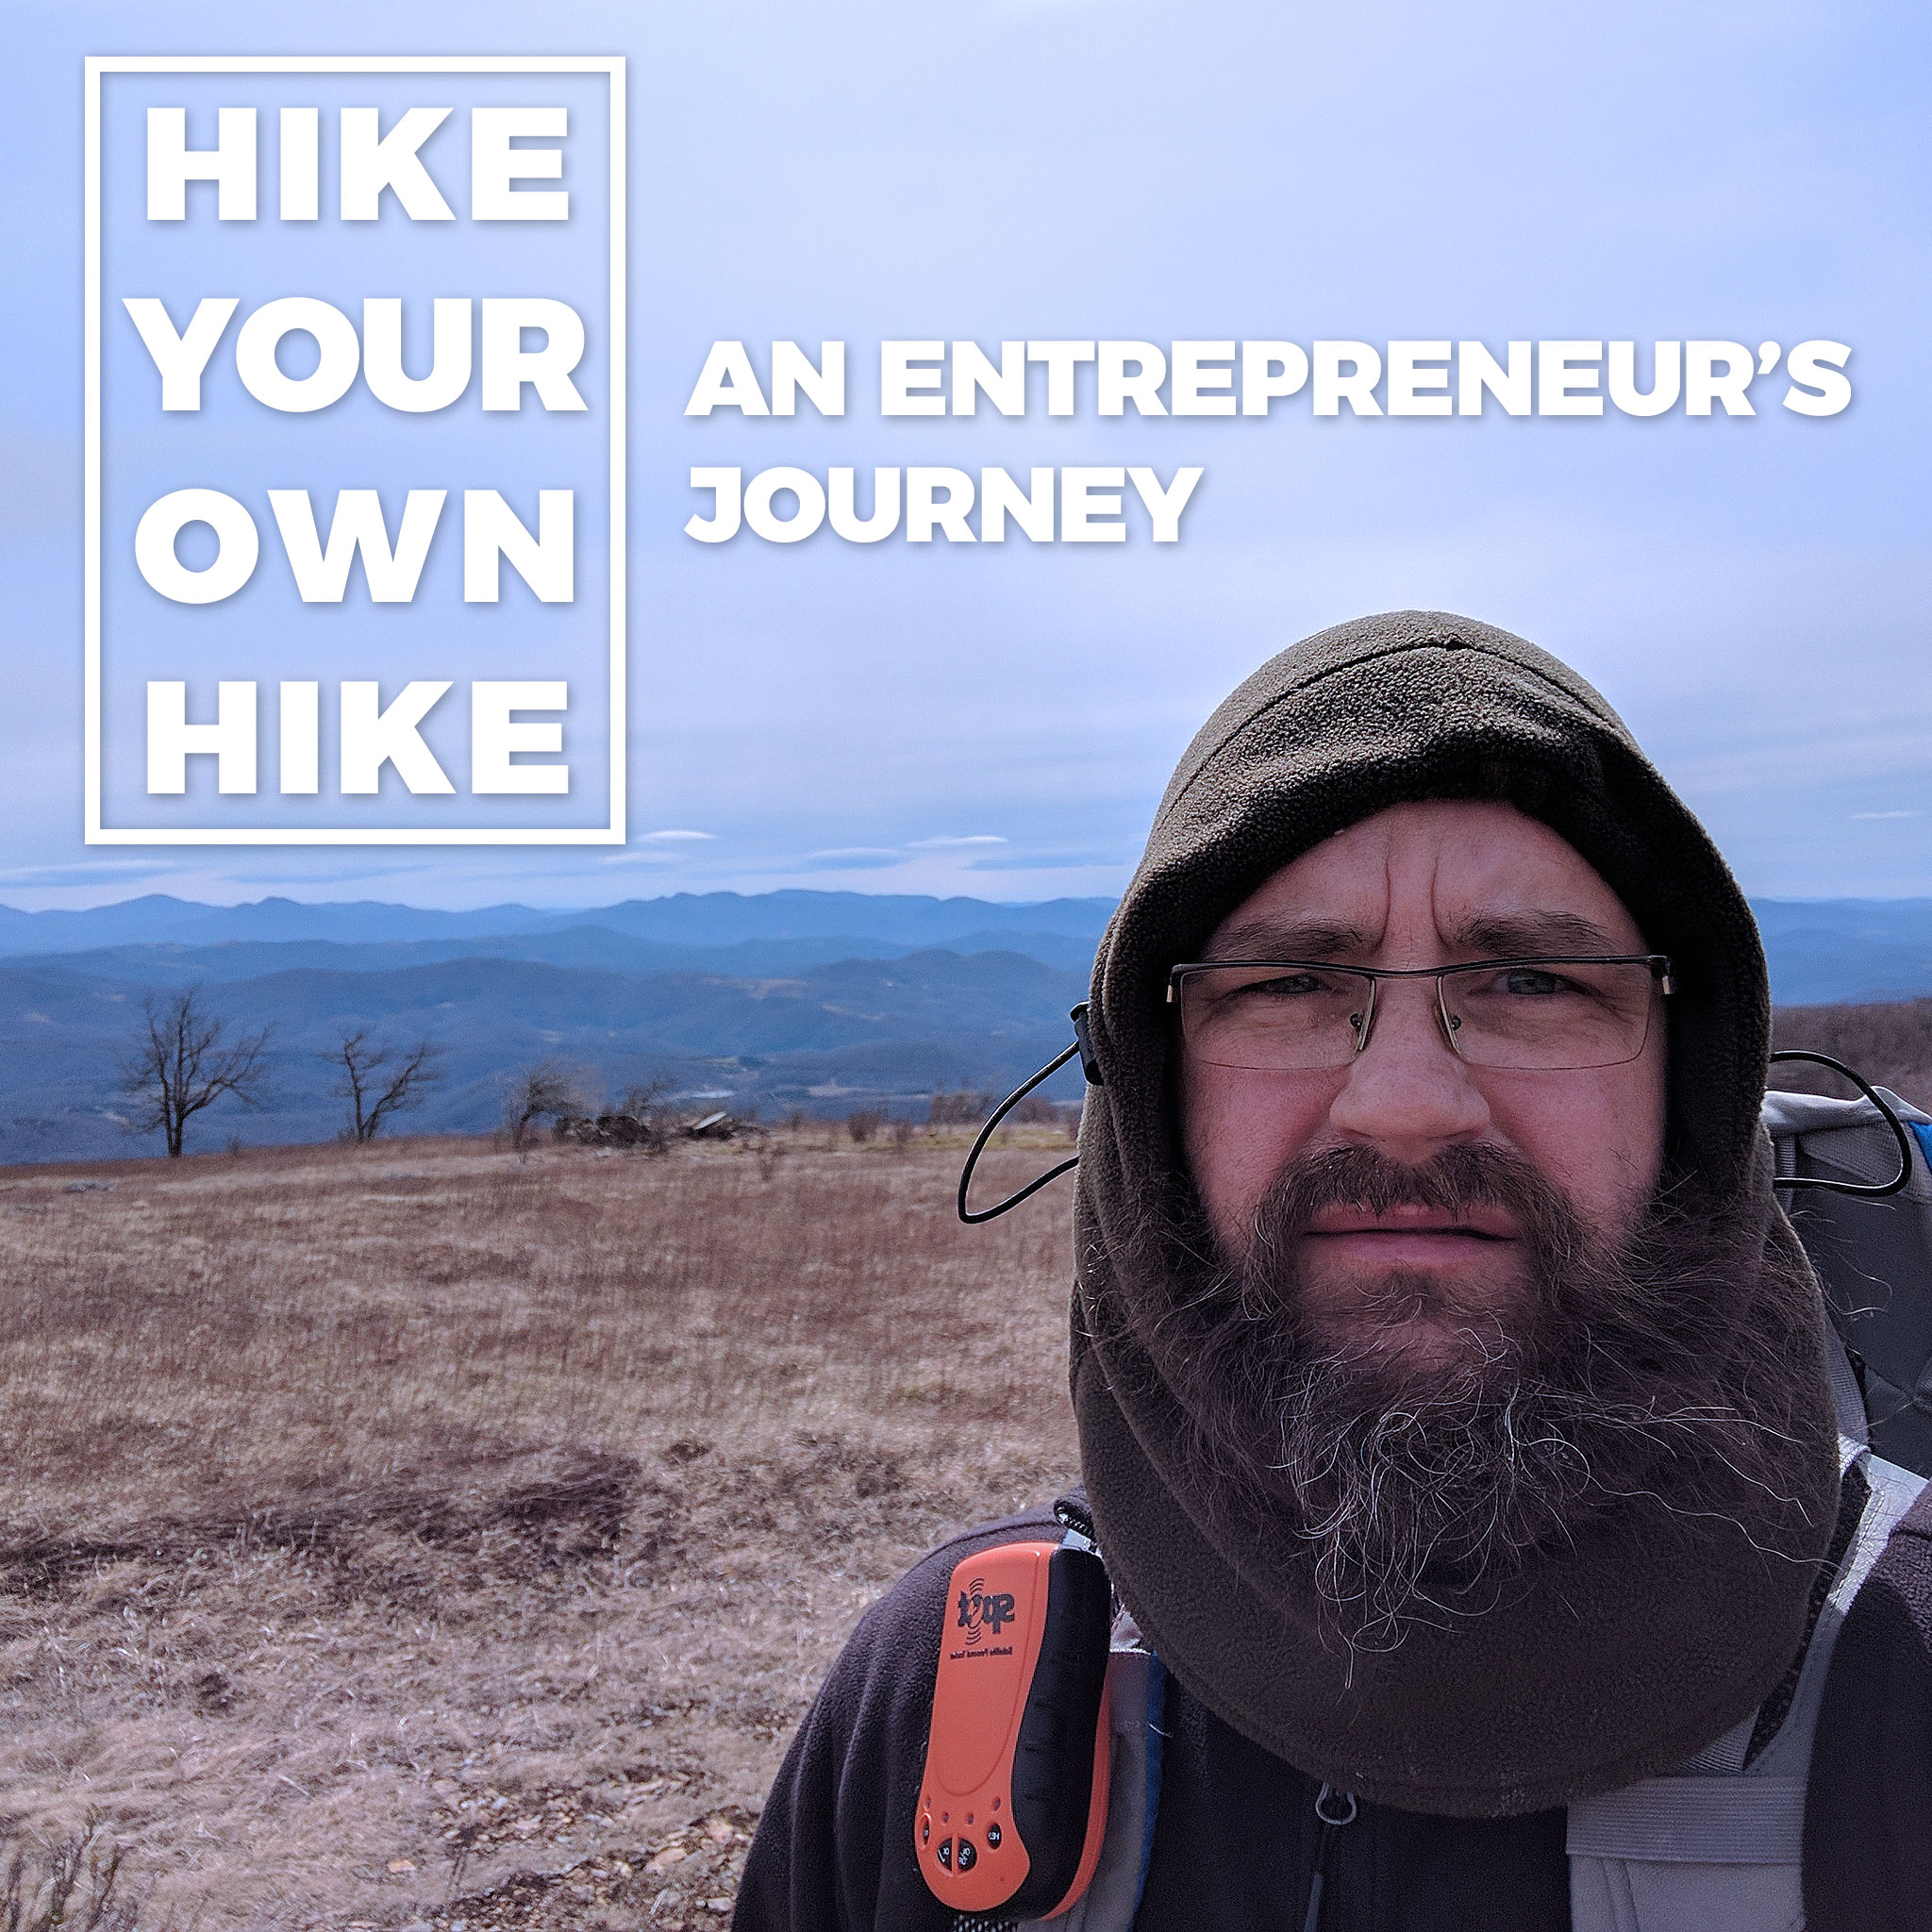 Hike Your Own Hike: An Entrepreneur's Journey